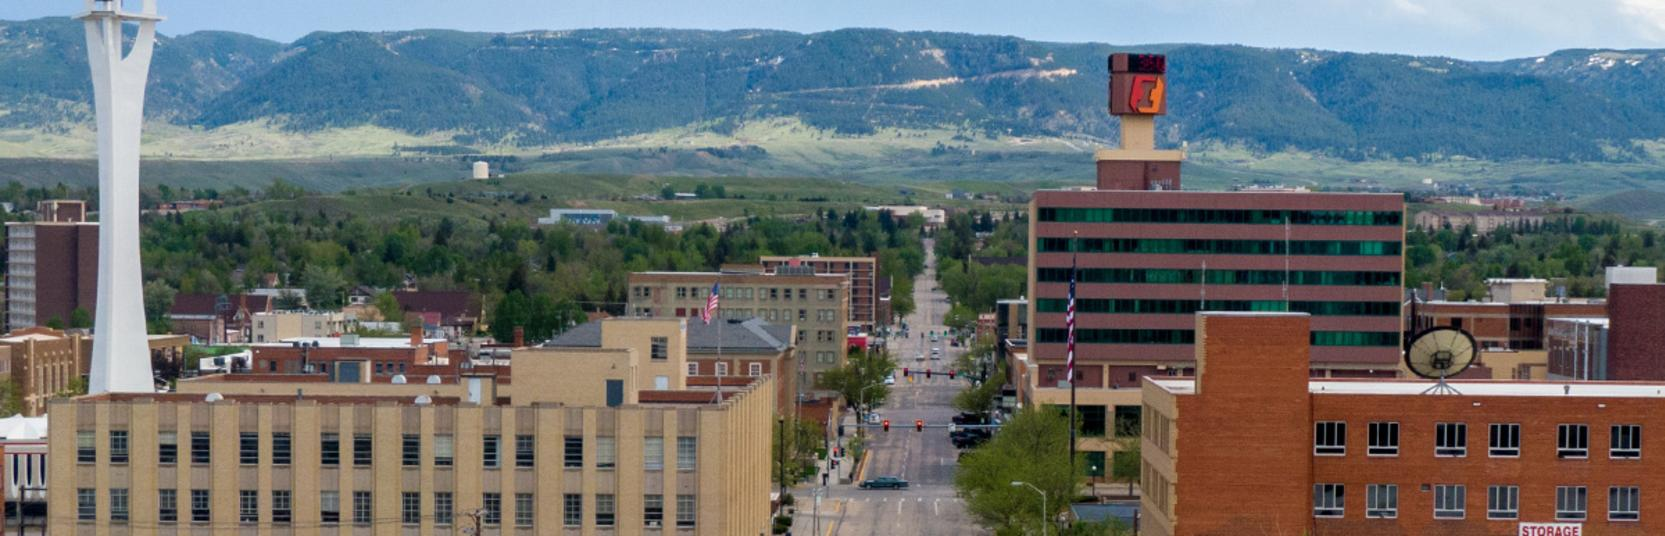 Downtown Casper